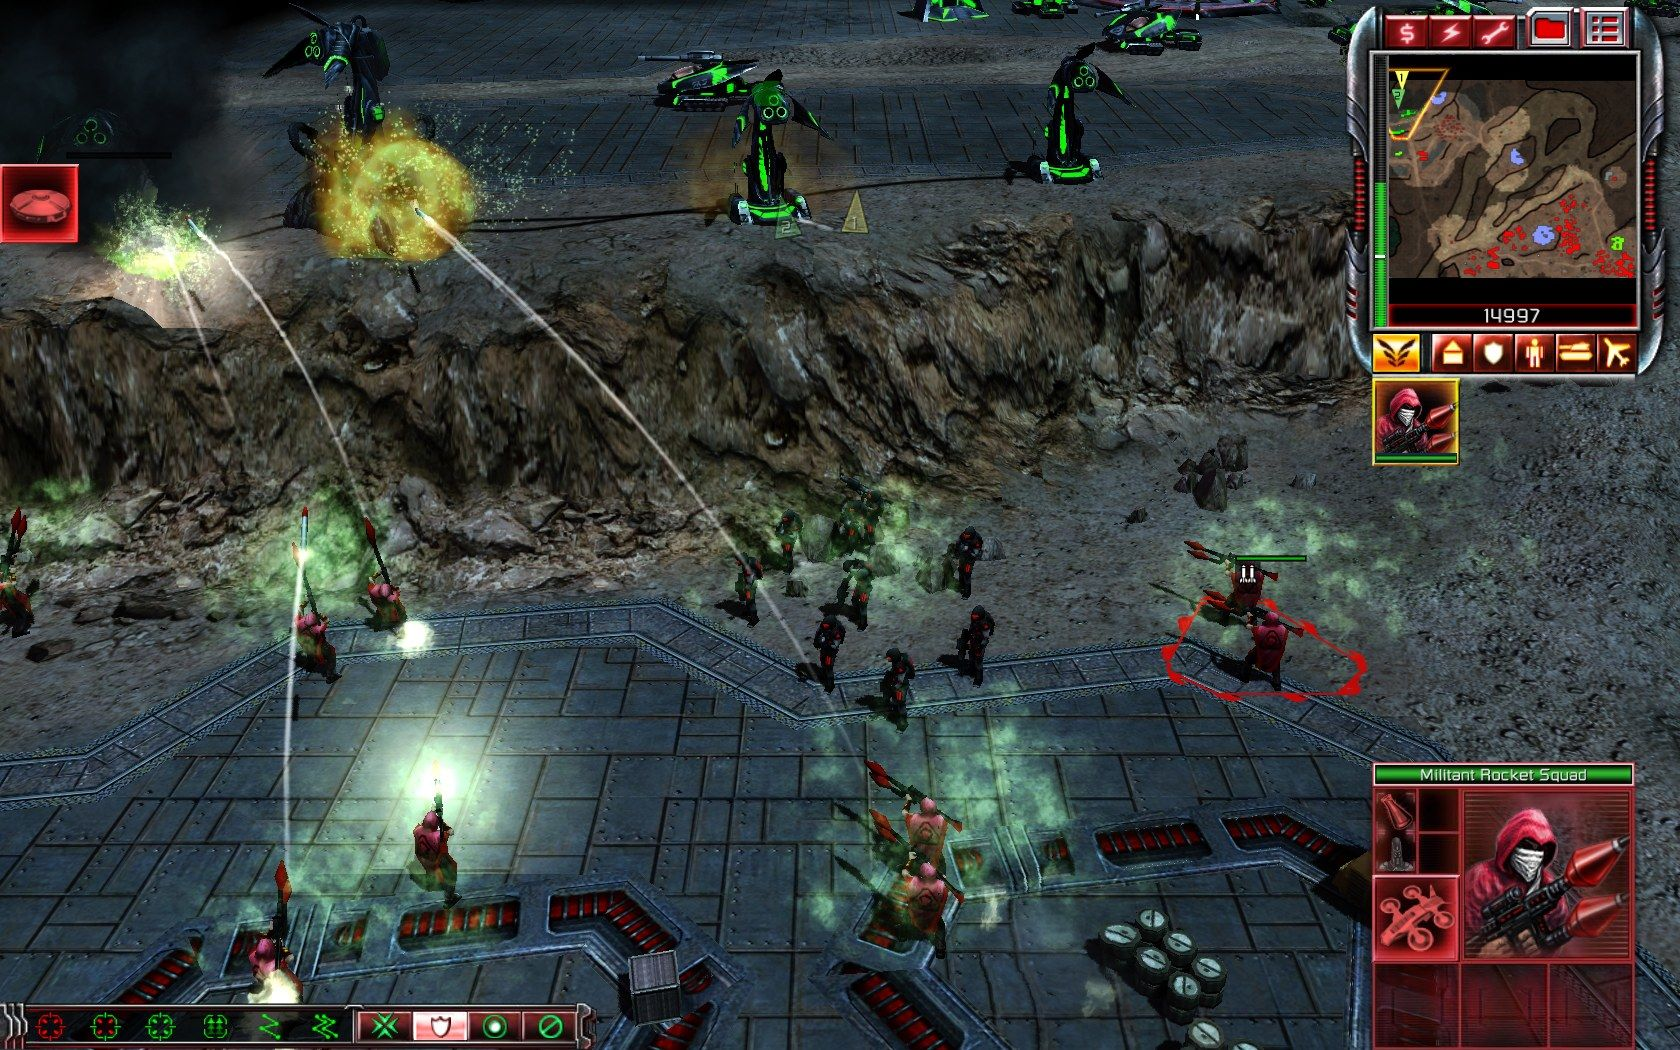 Command & Conquer 3: Kane's Wrath Windows Using rocket squad infantry to take out the anti-air defense turrets.